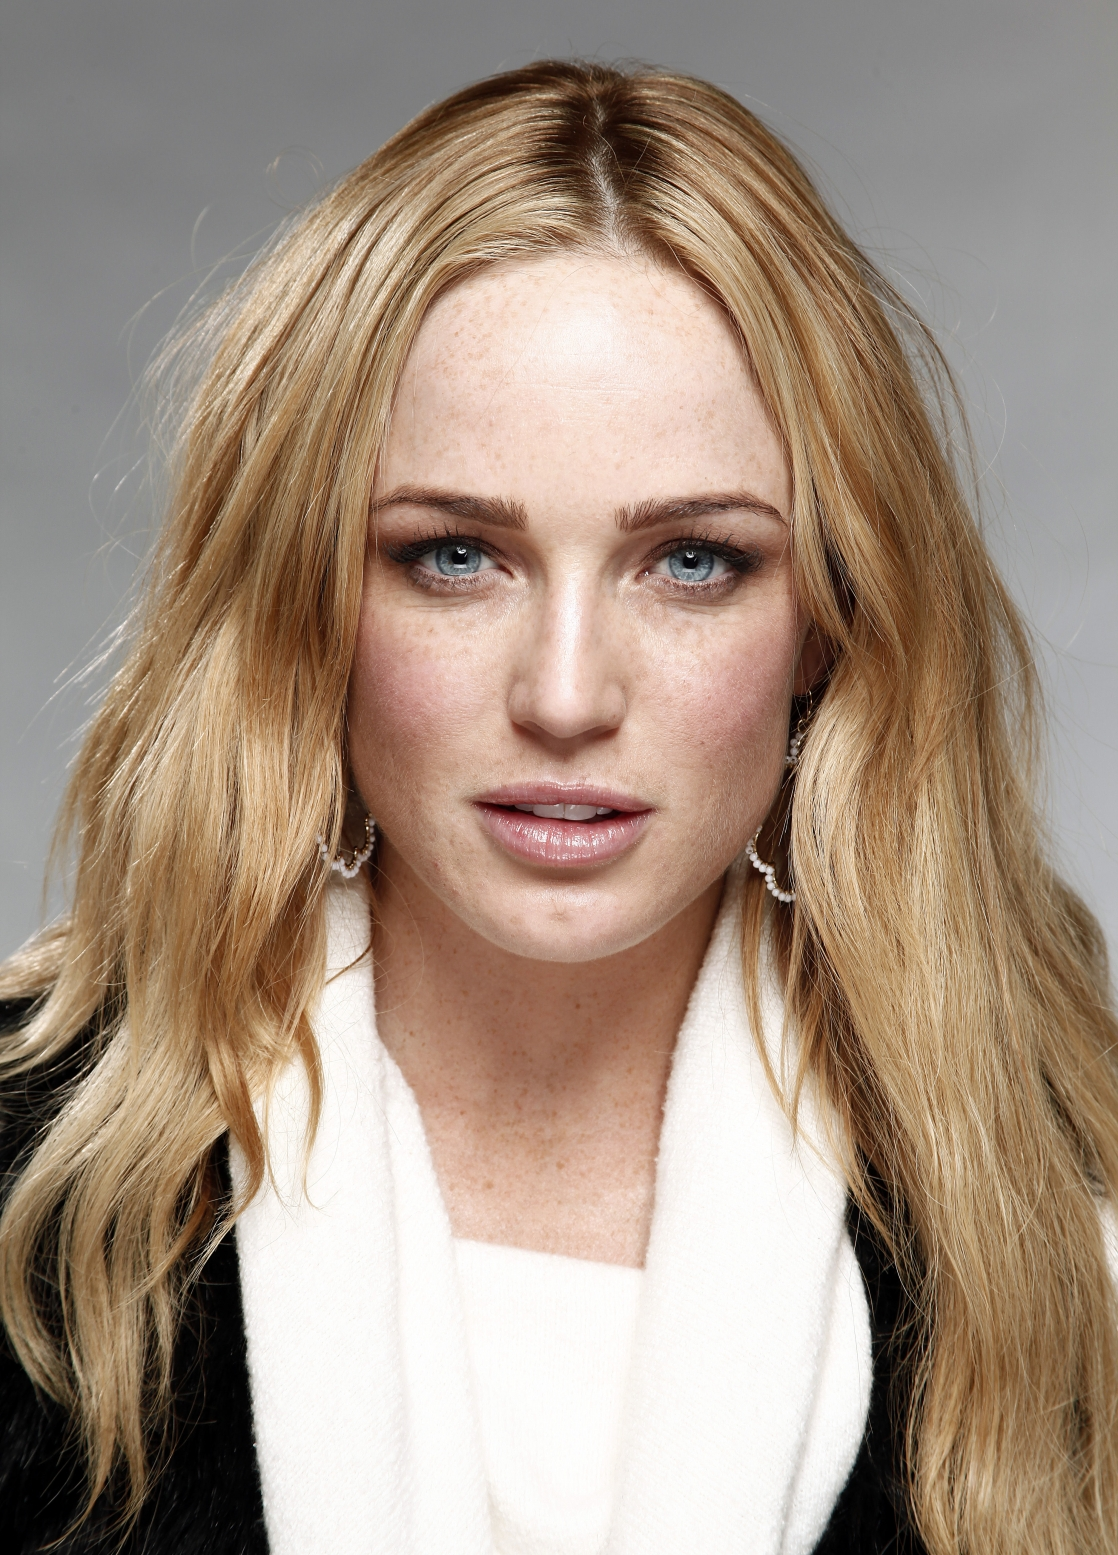 Caity Lotz earned a 0.4 million dollar salary - leaving the net worth at 2 million in 2017